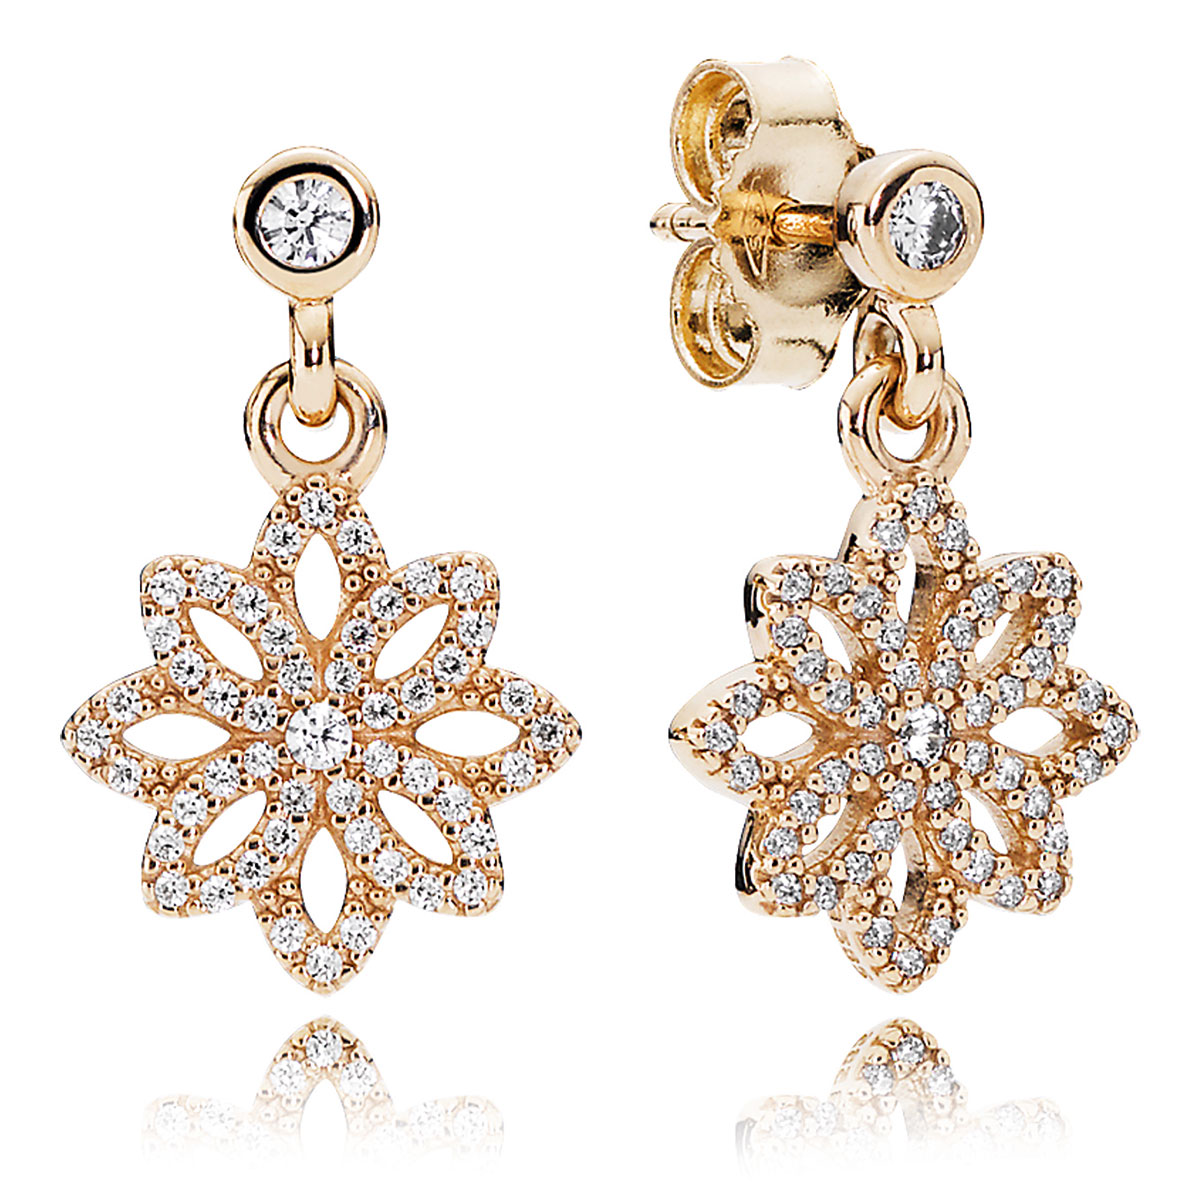 804-414-PANDORA Lace Botanique with 14K and Clear CZ Dangle Earrings